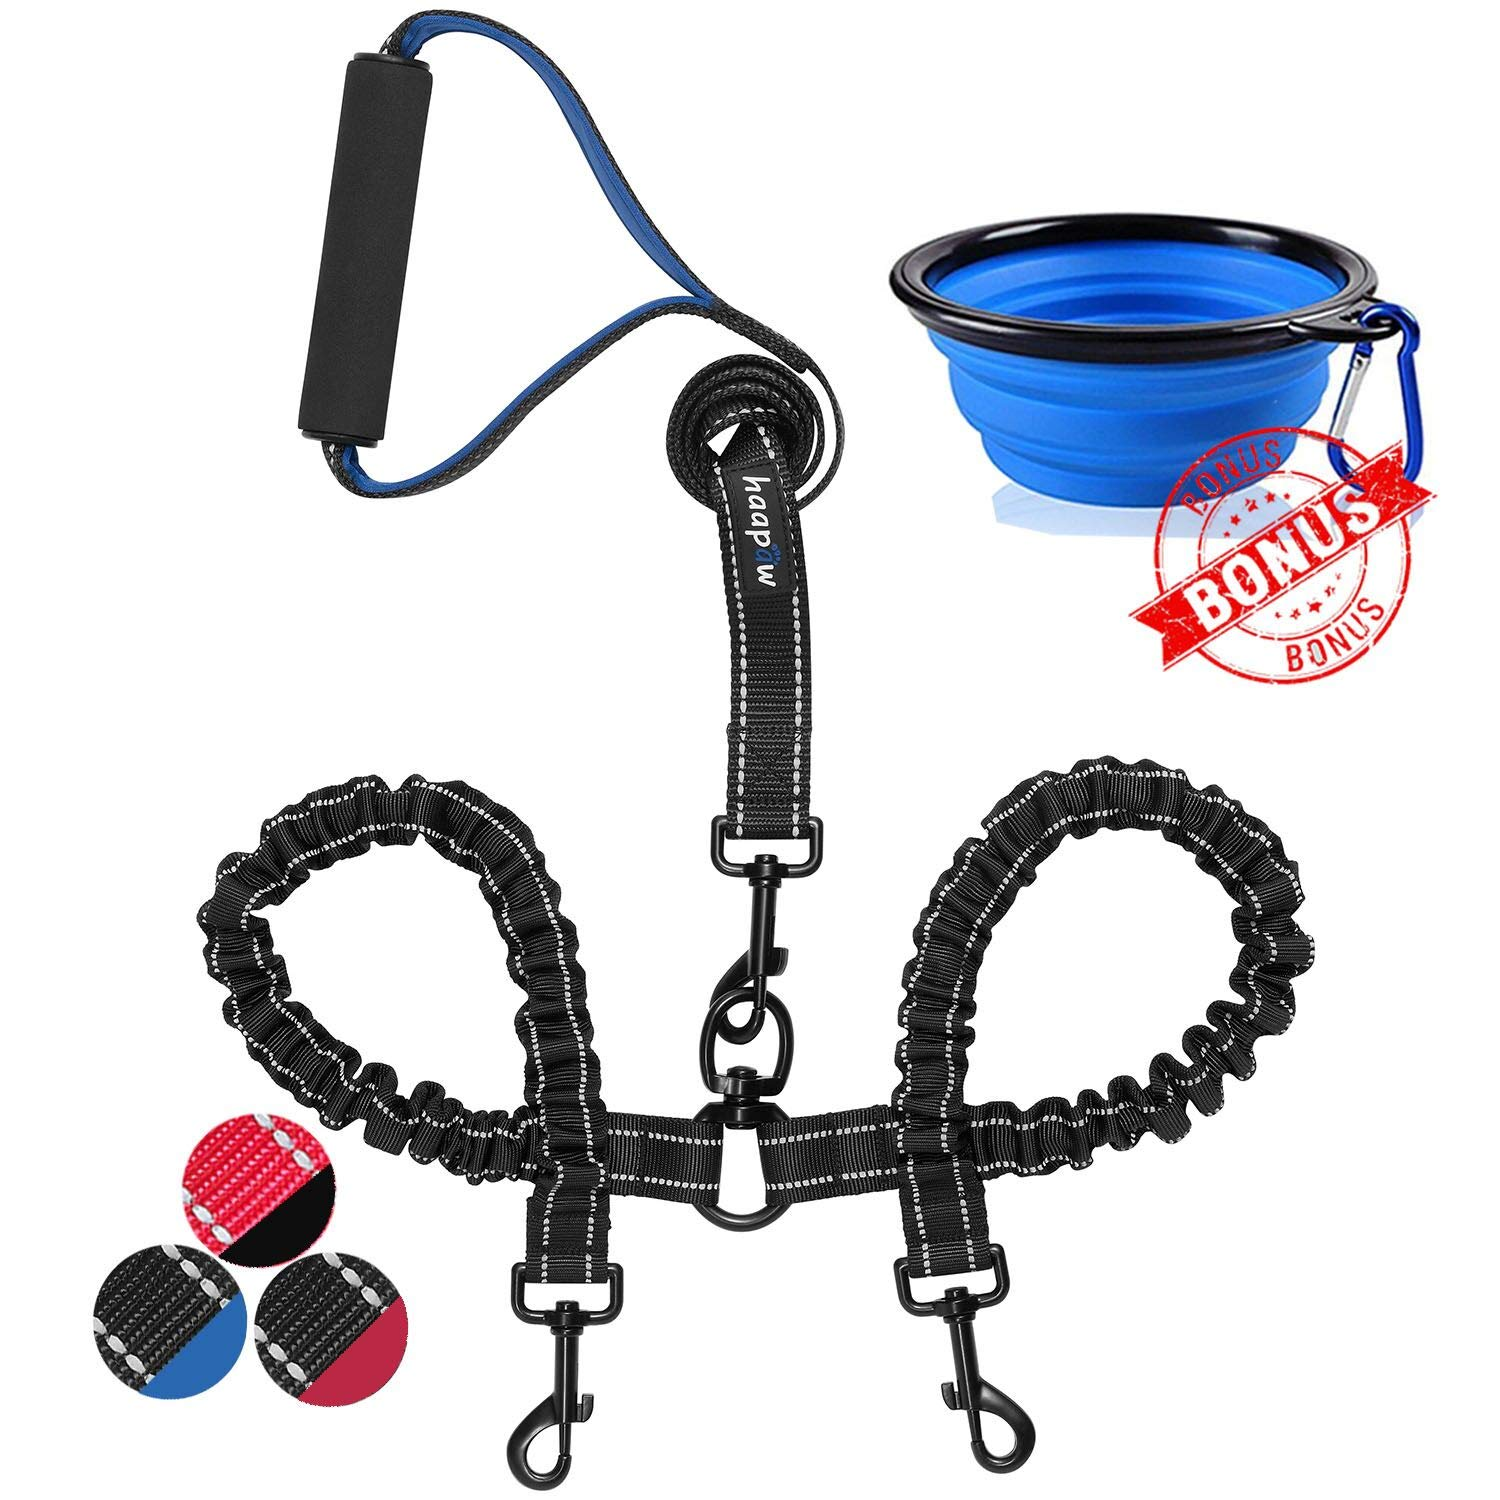 haapaw Two Dog Leash Coupler - 2 Dog Leash Tangle Free, Stretchable from 20 to 35 Inch - Comfortable Handle Dual Dog Leash for 2 Dogs with a Free Collapsible Dog Bowl (Black/Blue)